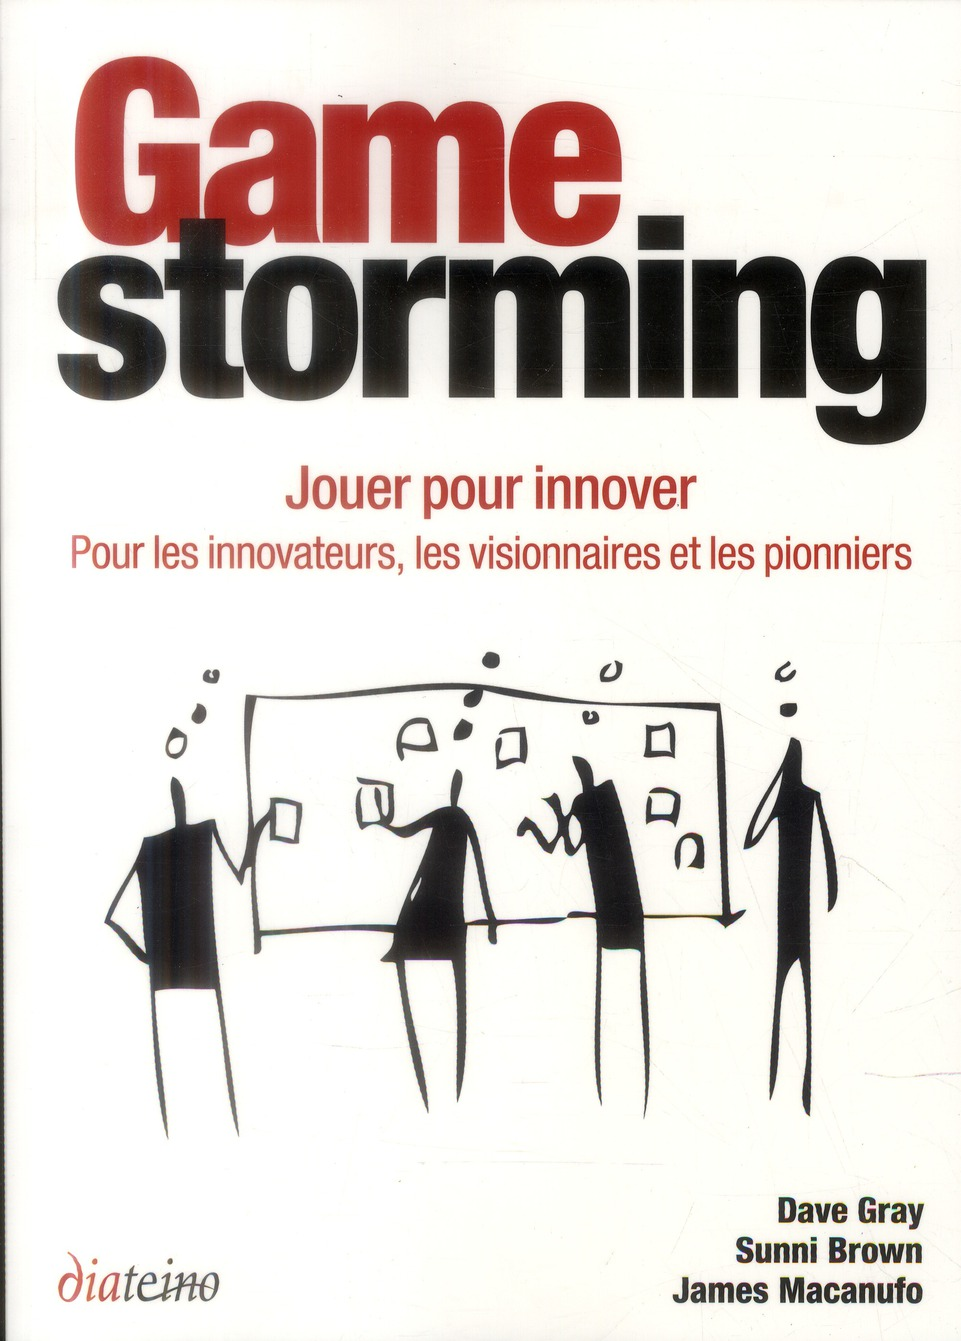 GAMESTORMING JOUER POUR INNOVER